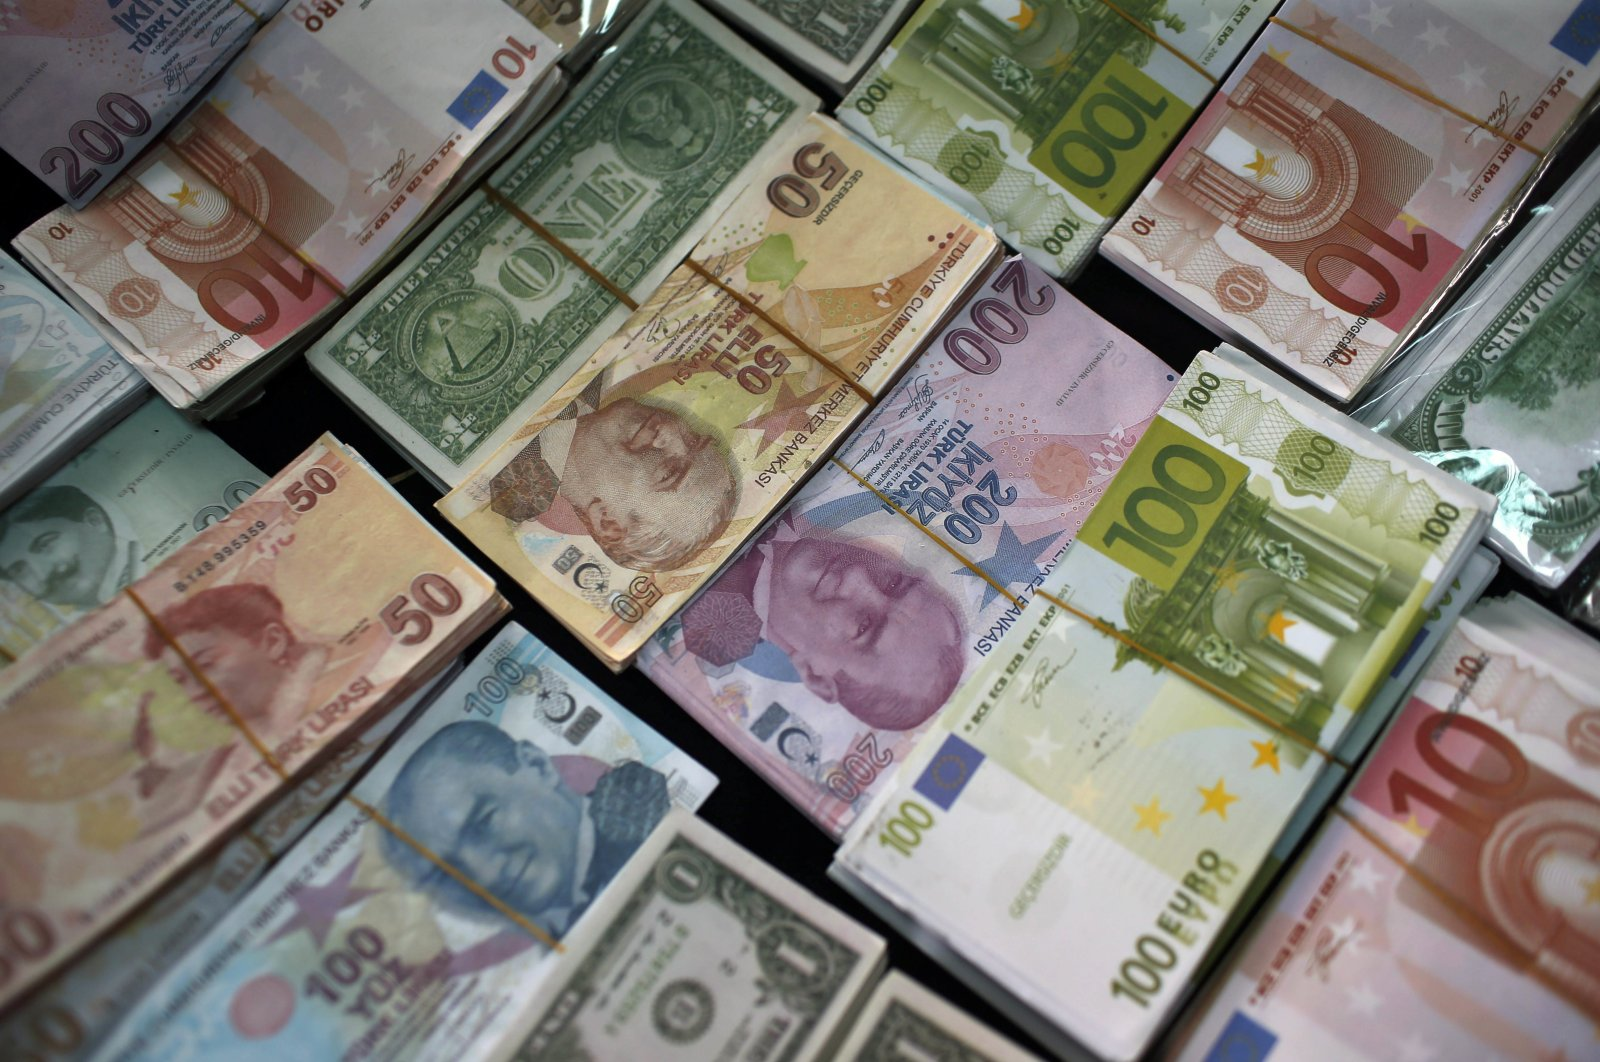 Turkish liras, euros and U.S. dollars are stacked at a currency exchange office in Istanbul, Turkey, June 8, 2015. (AP Photo)